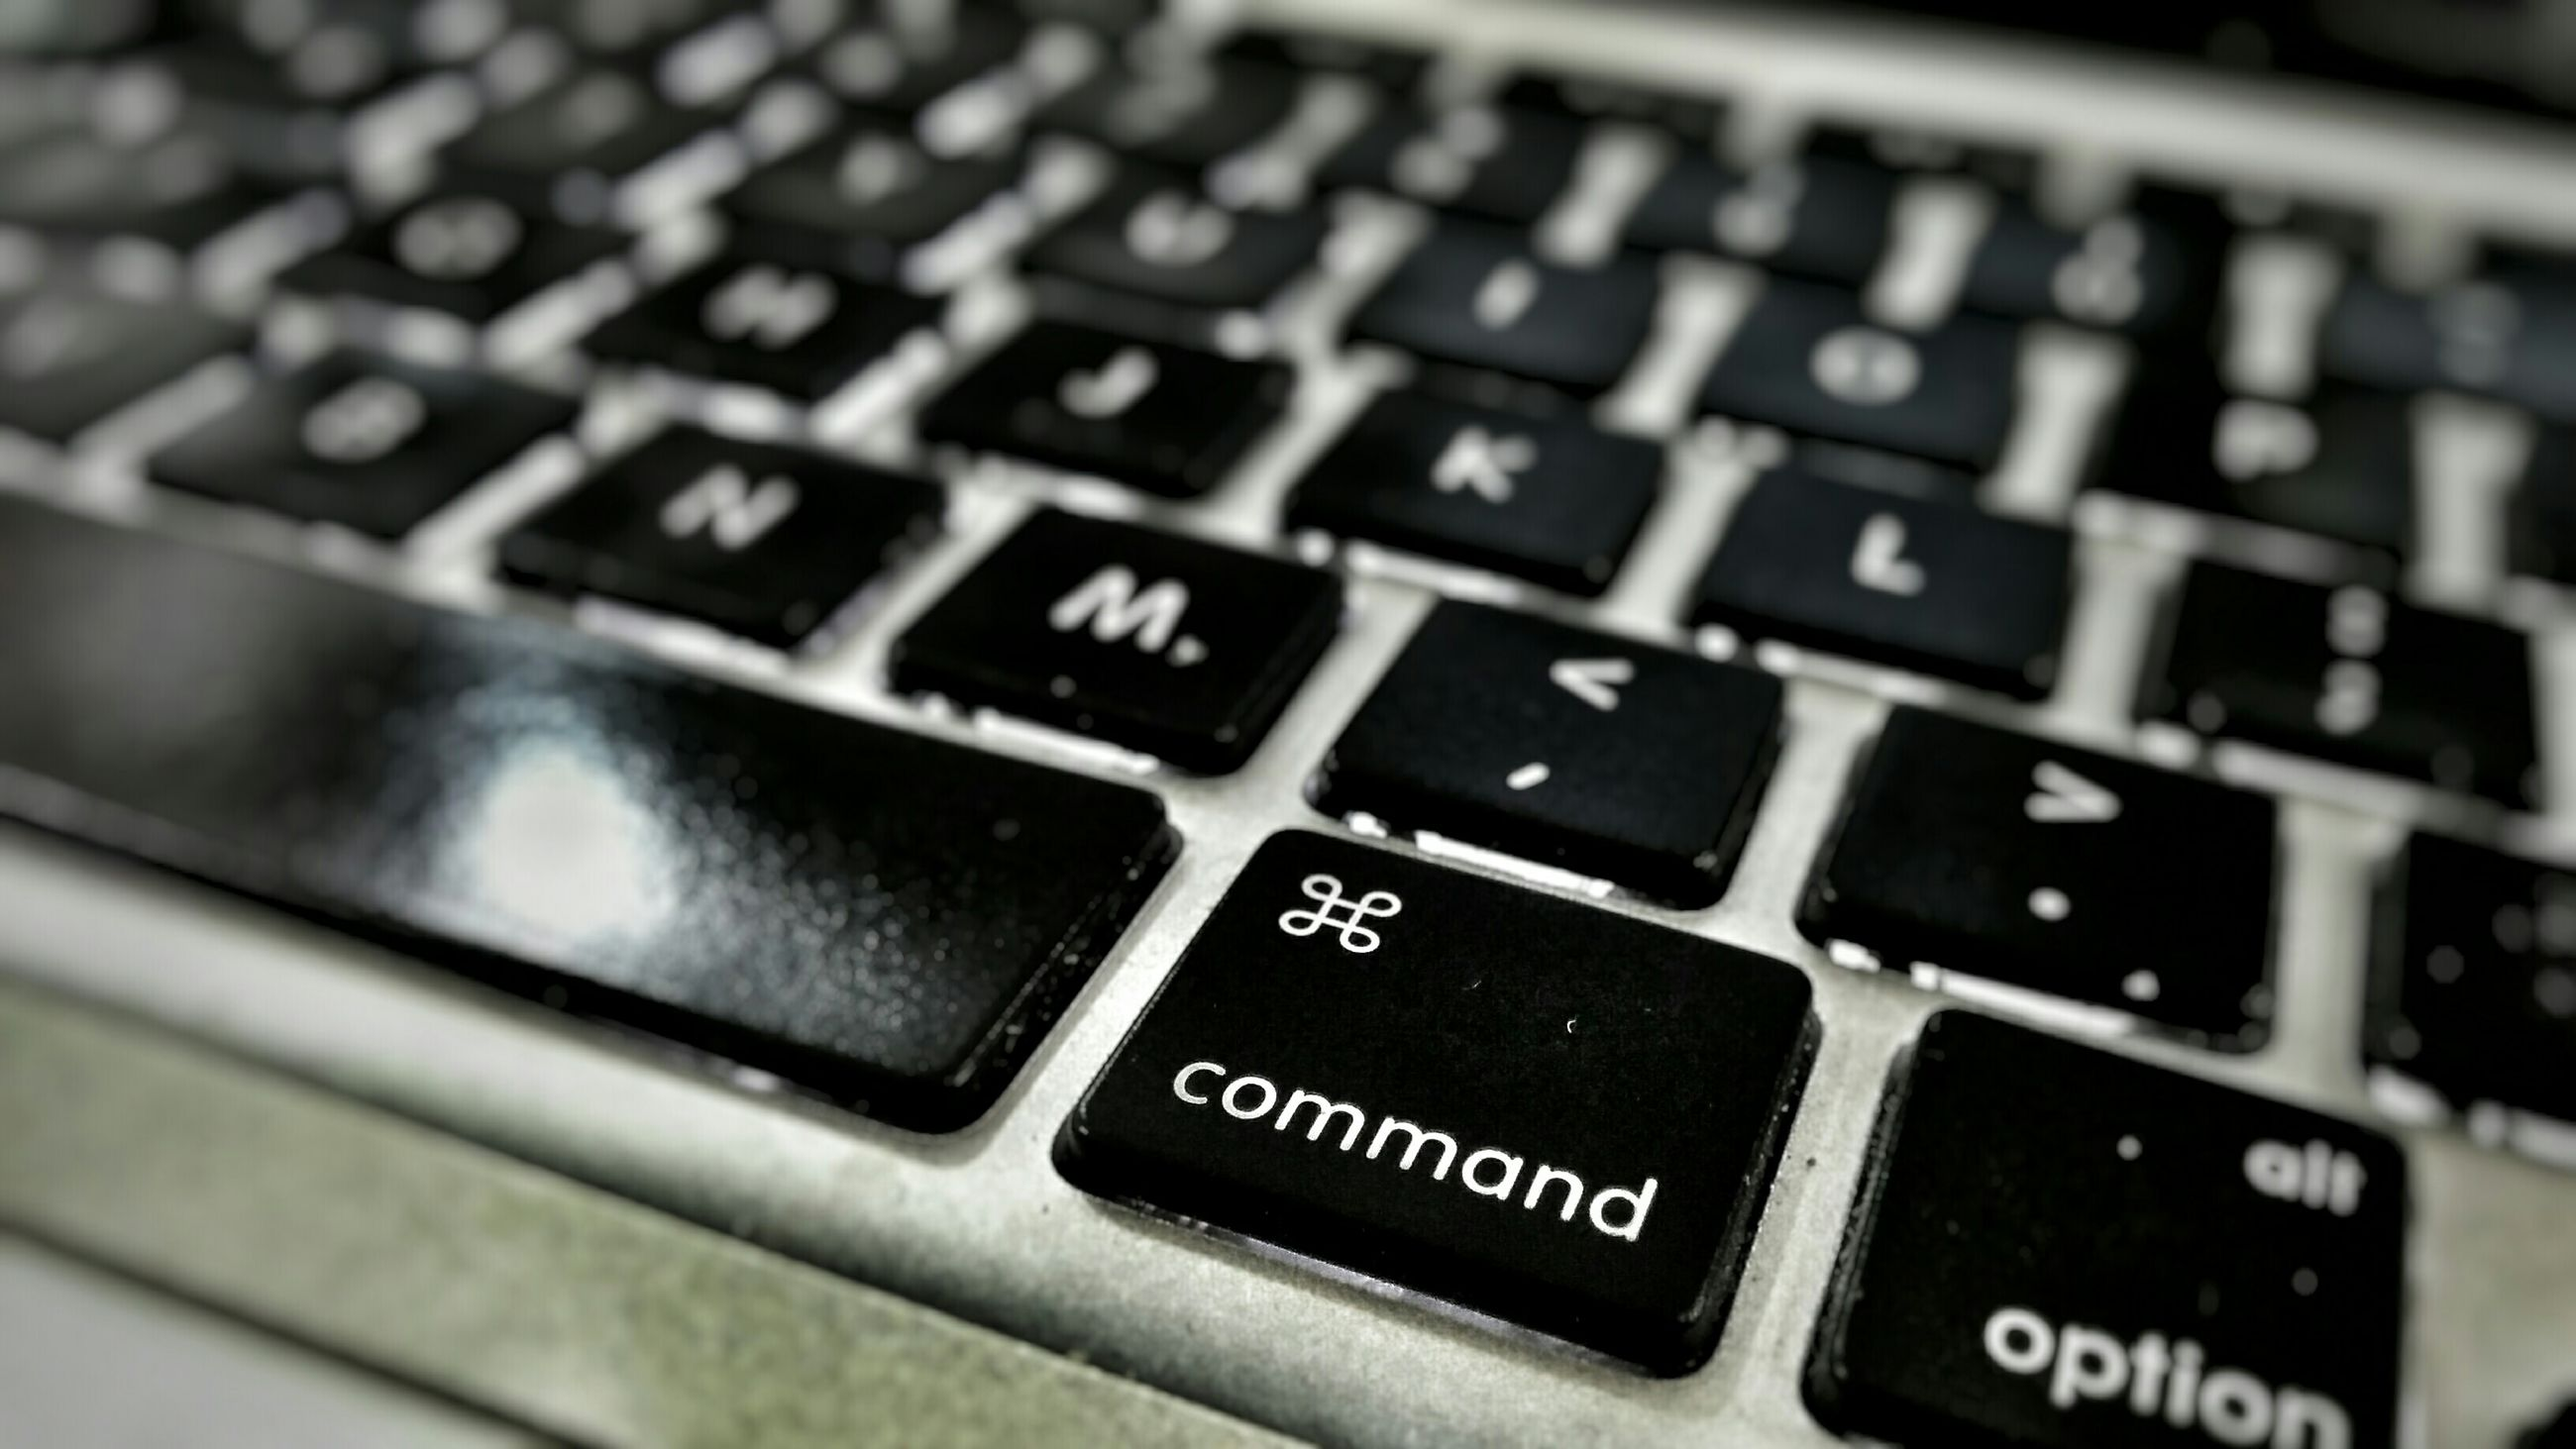 communication, indoors, text, number, computer keyboard, technology, western script, close-up, wireless technology, connection, alphabet, laptop, push button, control, selective focus, computer, capital letter, computer key, still life, computer equipment